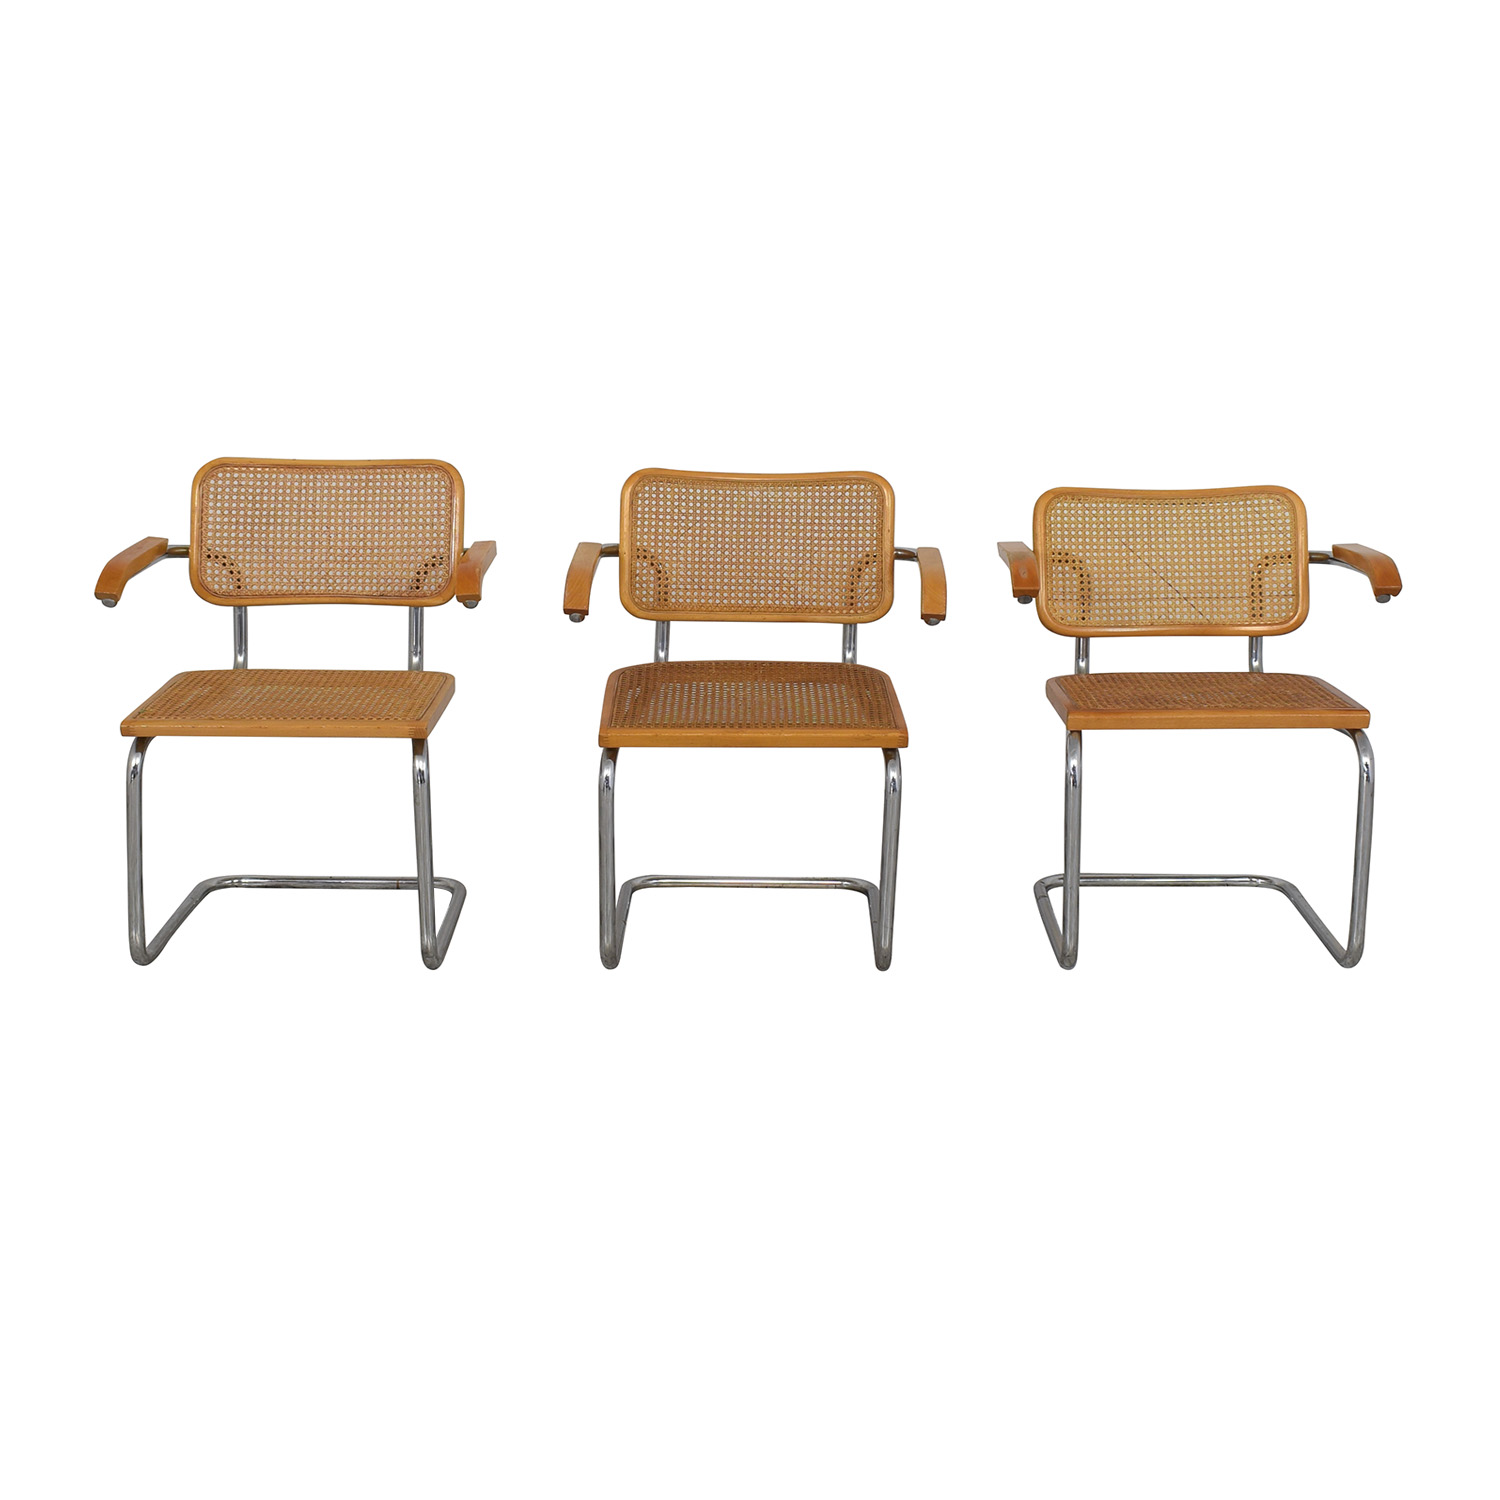 Scandinavian Designs Scandinavian Designs Bendt Dining Arm Chairs ct